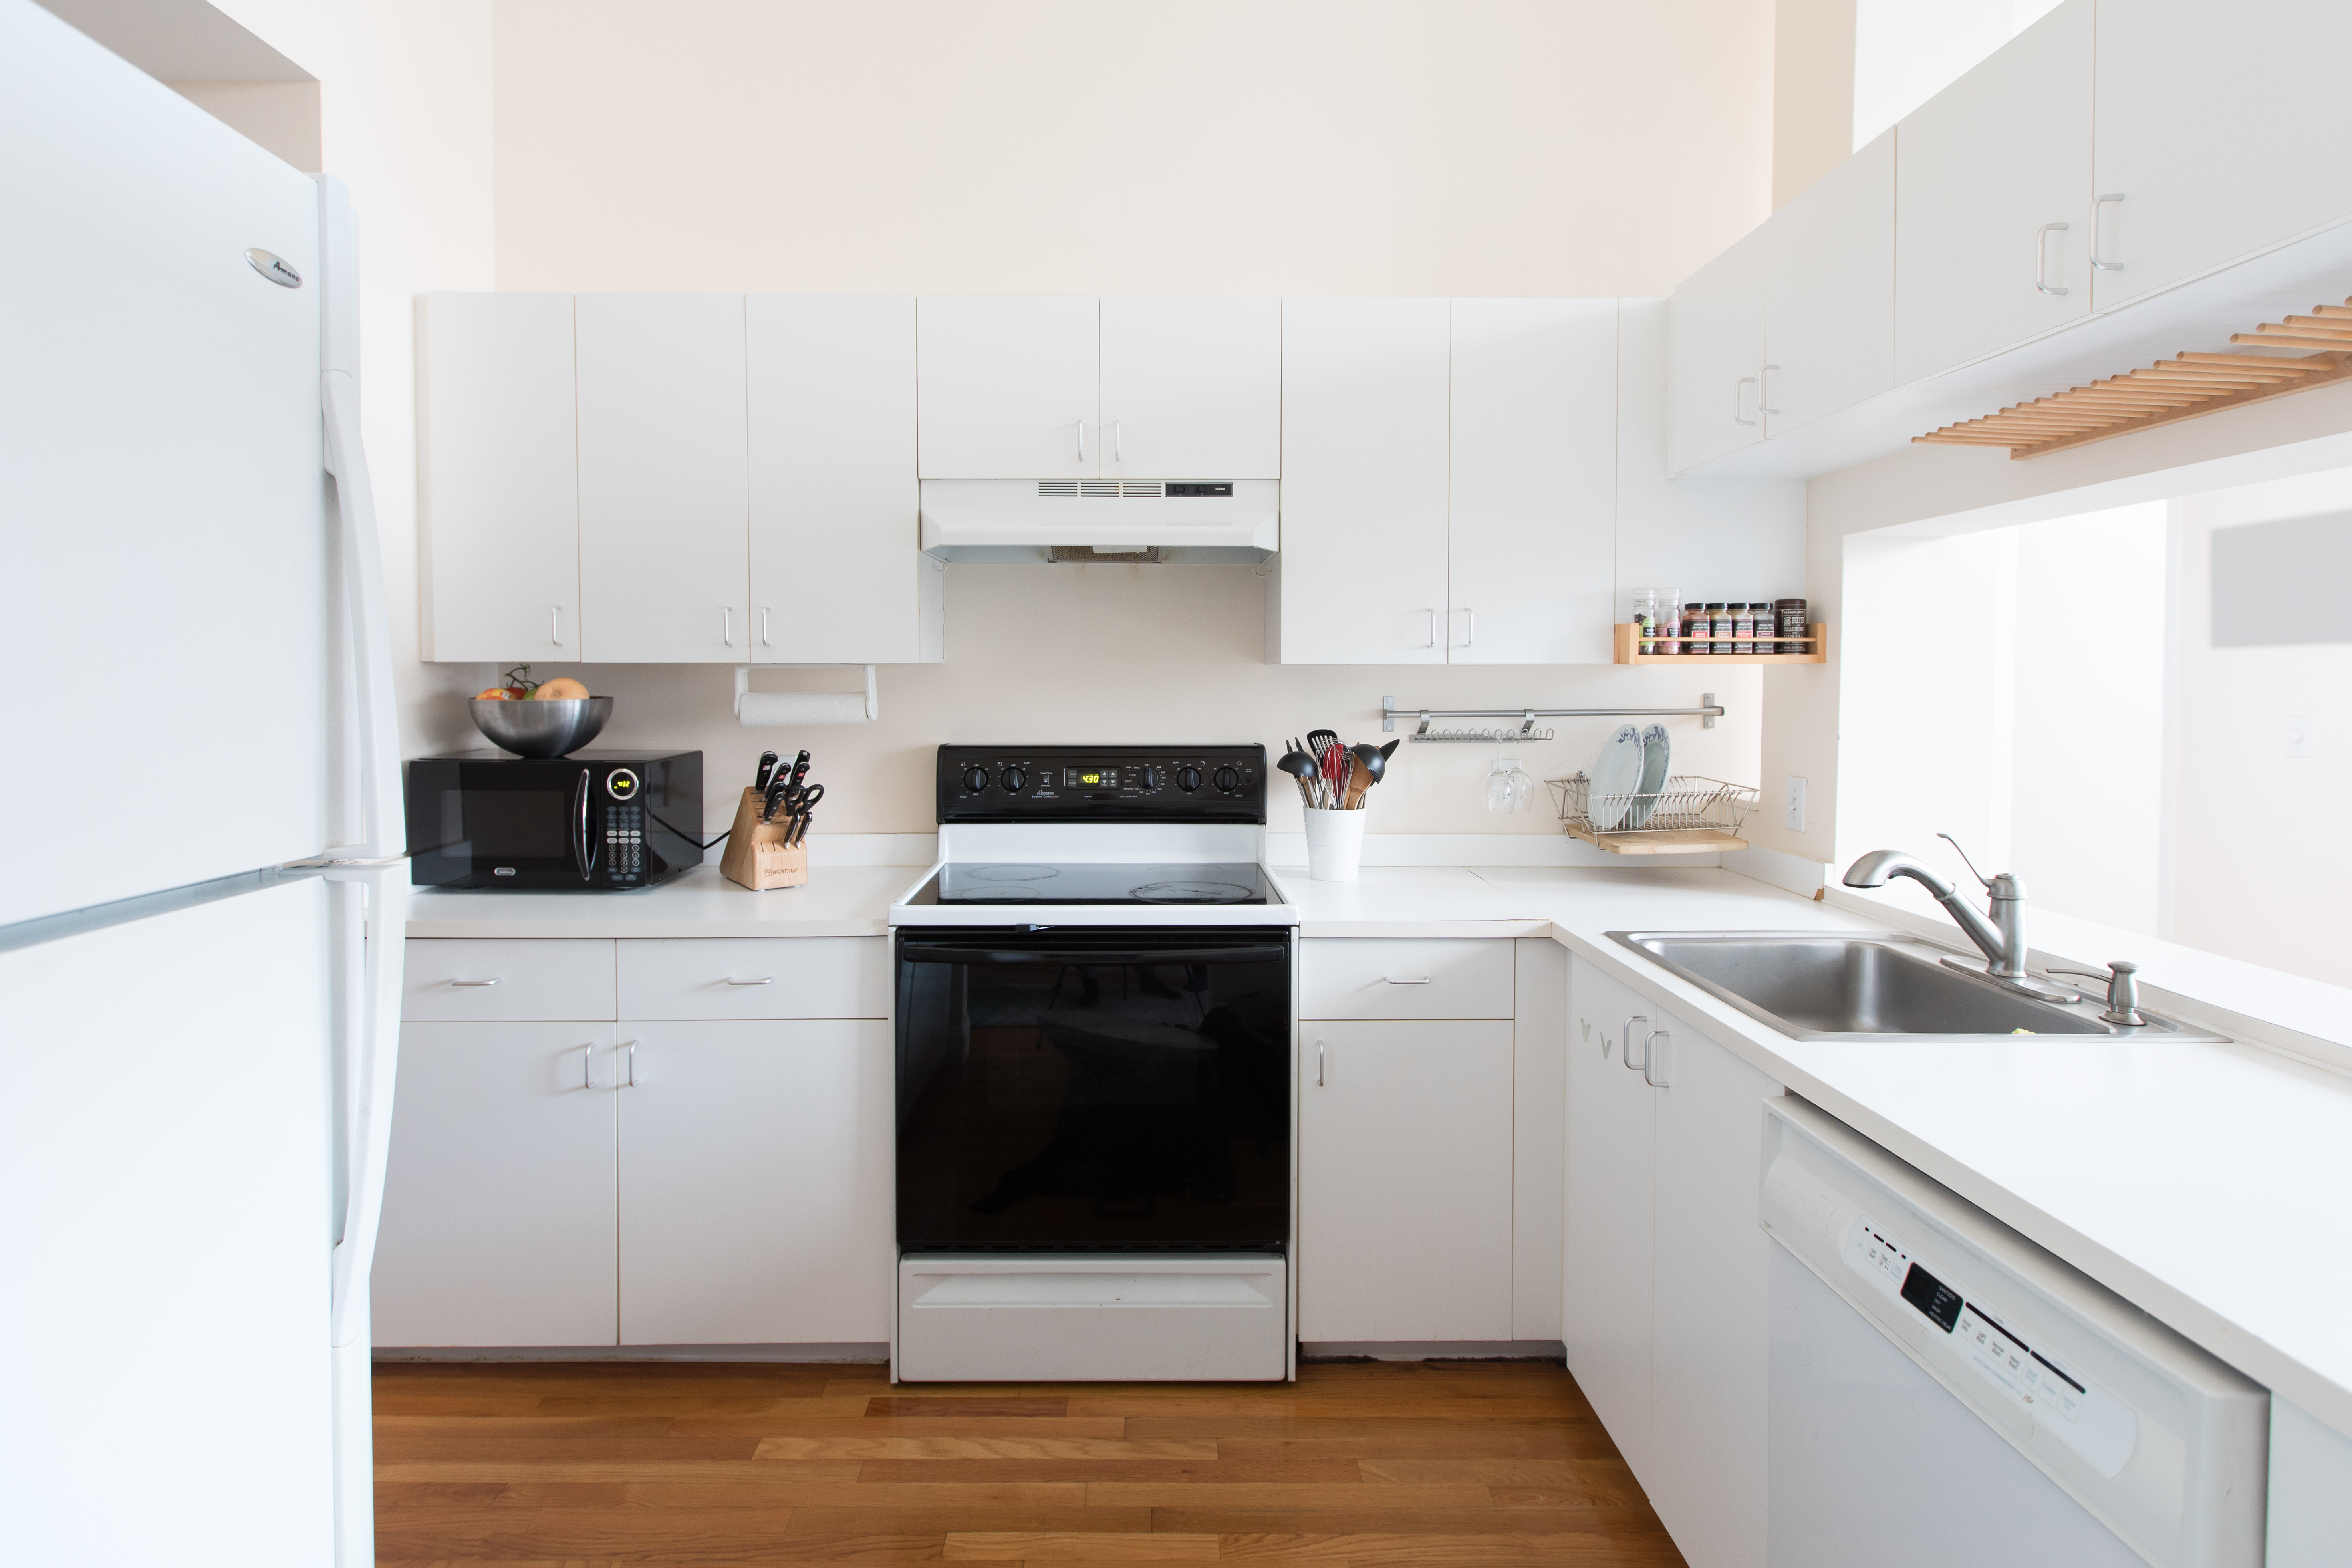 Cheap Appliance Makeovers - Refrigerator Paint, Covers ...